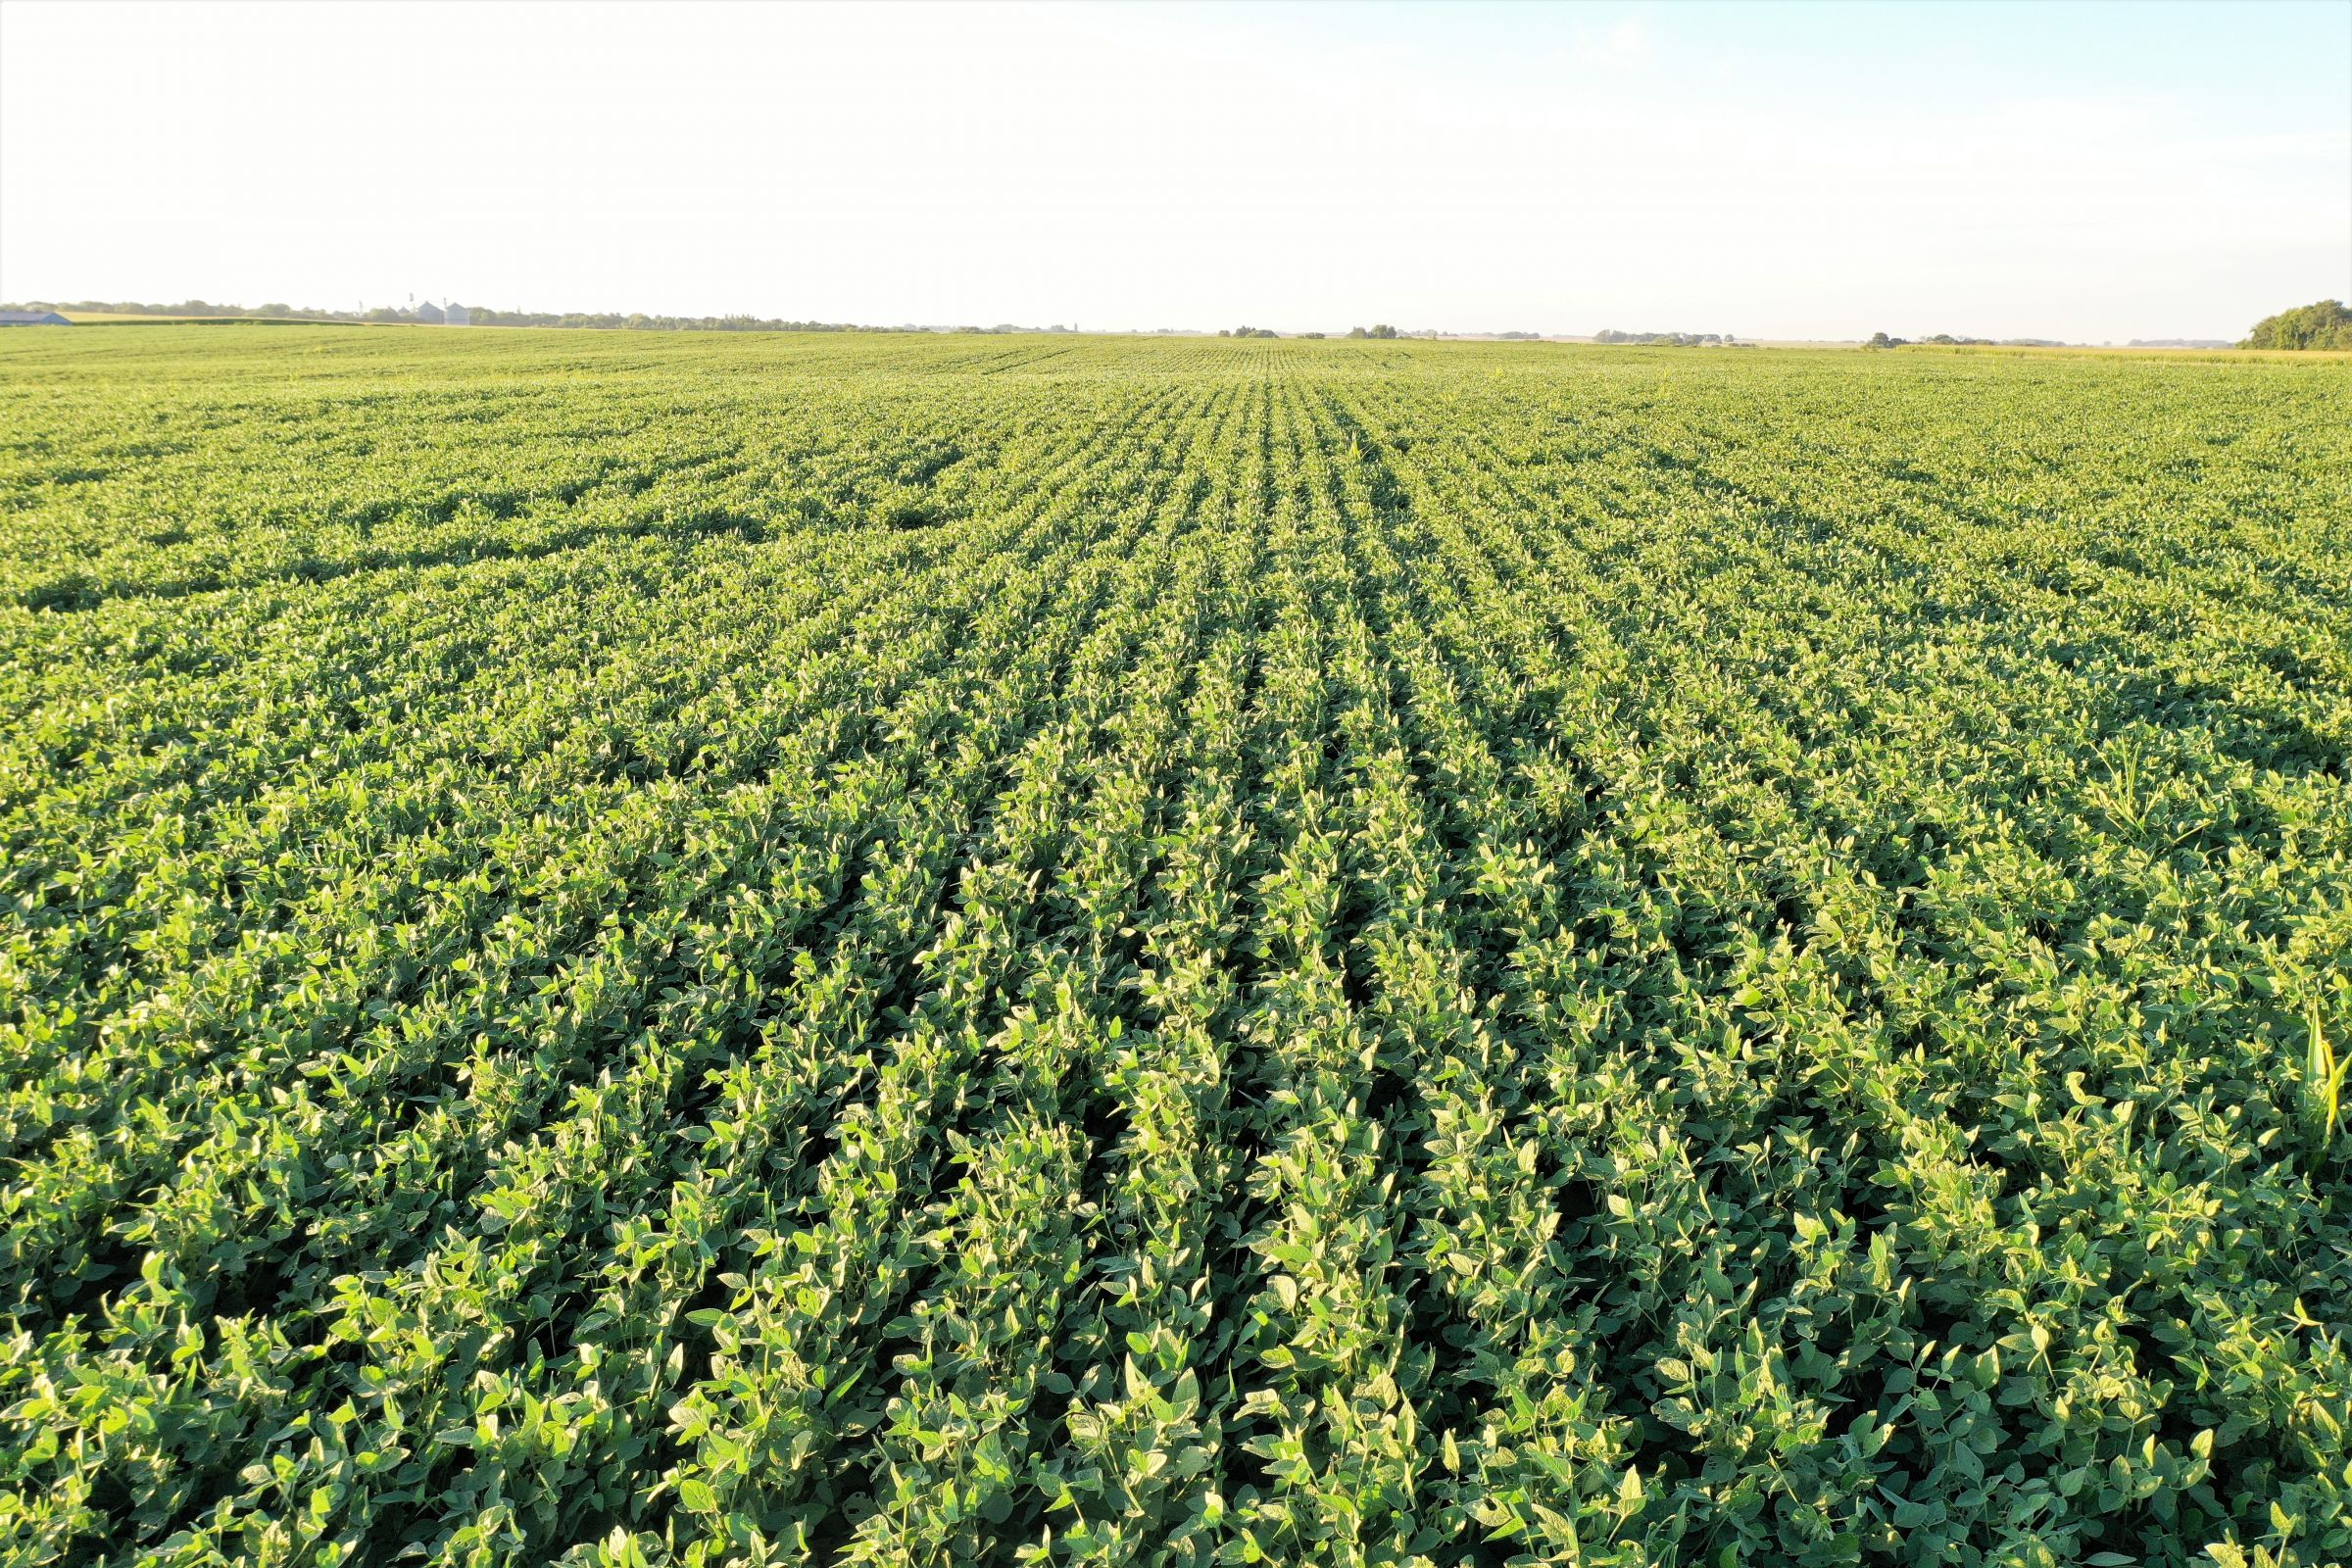 land-butler-county-iowa-157-acres-listing-number-15128-1-2020-08-20-212006.jpg